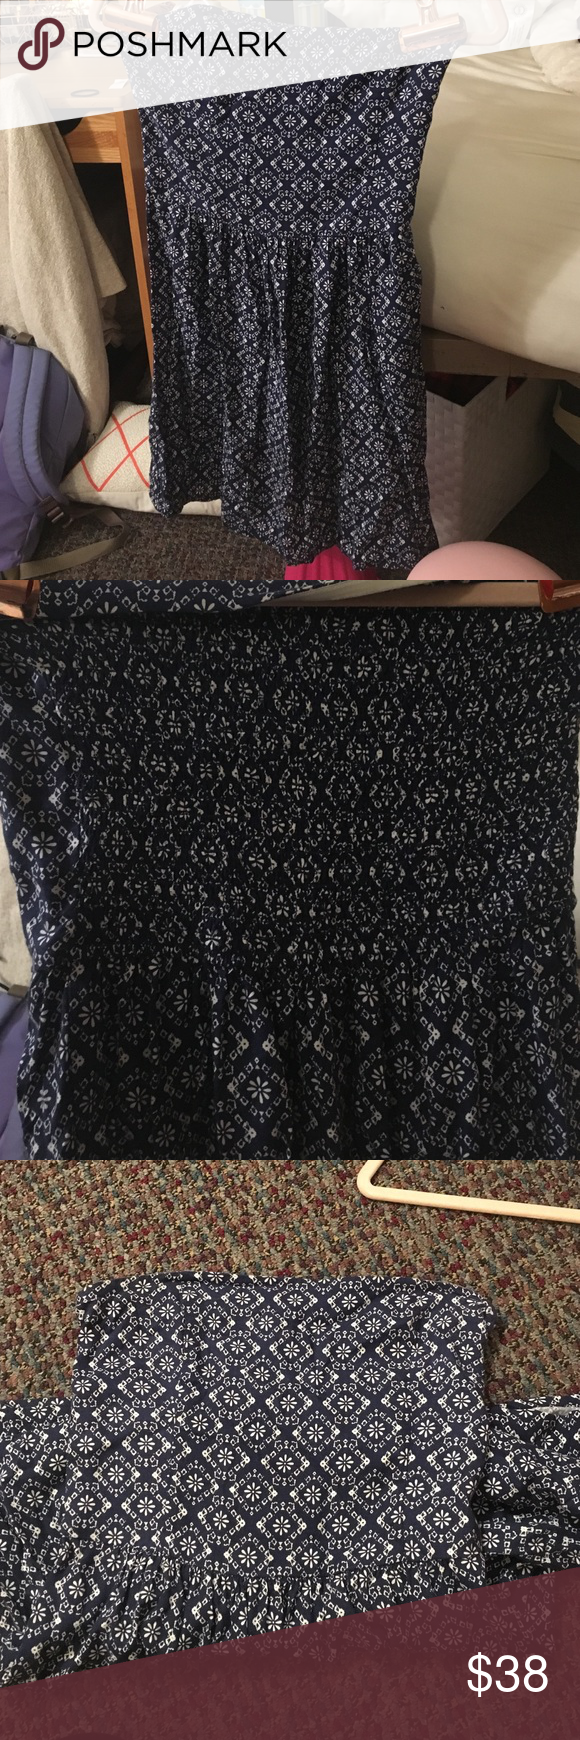 Abercrombie and fitch patterned dress Abercrombie & Fitch printed strapless dress. Blue and white floral print sun dress. Light soft material. Perfect for the summer. Never worn but does not have tag anymore. Fits small Abercrombie & Fitch Dresses Mini